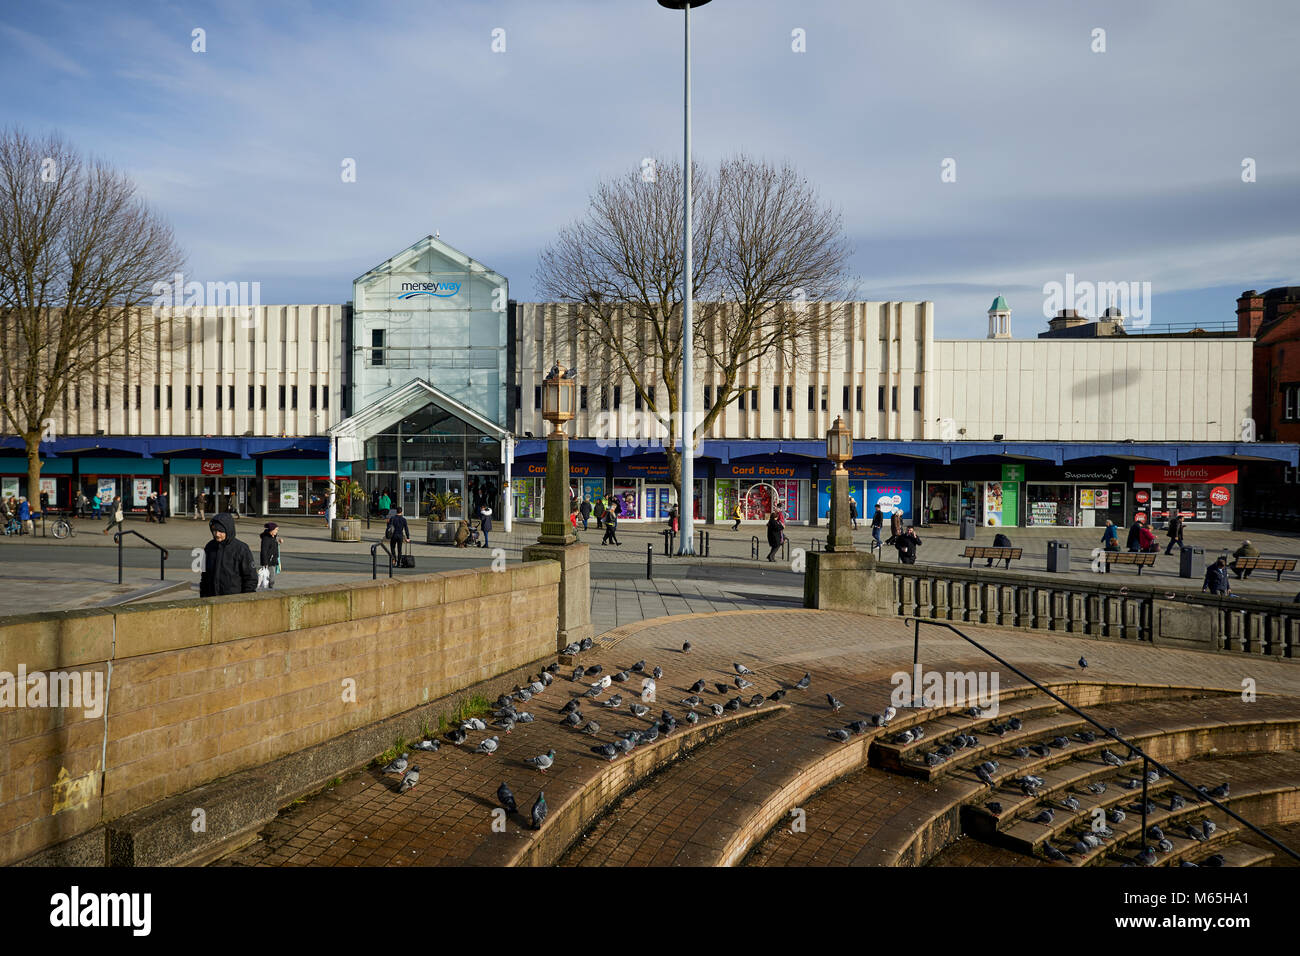 Mersey Square featuring the bears pit and the Merseyway shopping centre in the background, in Stockport - Stock Image